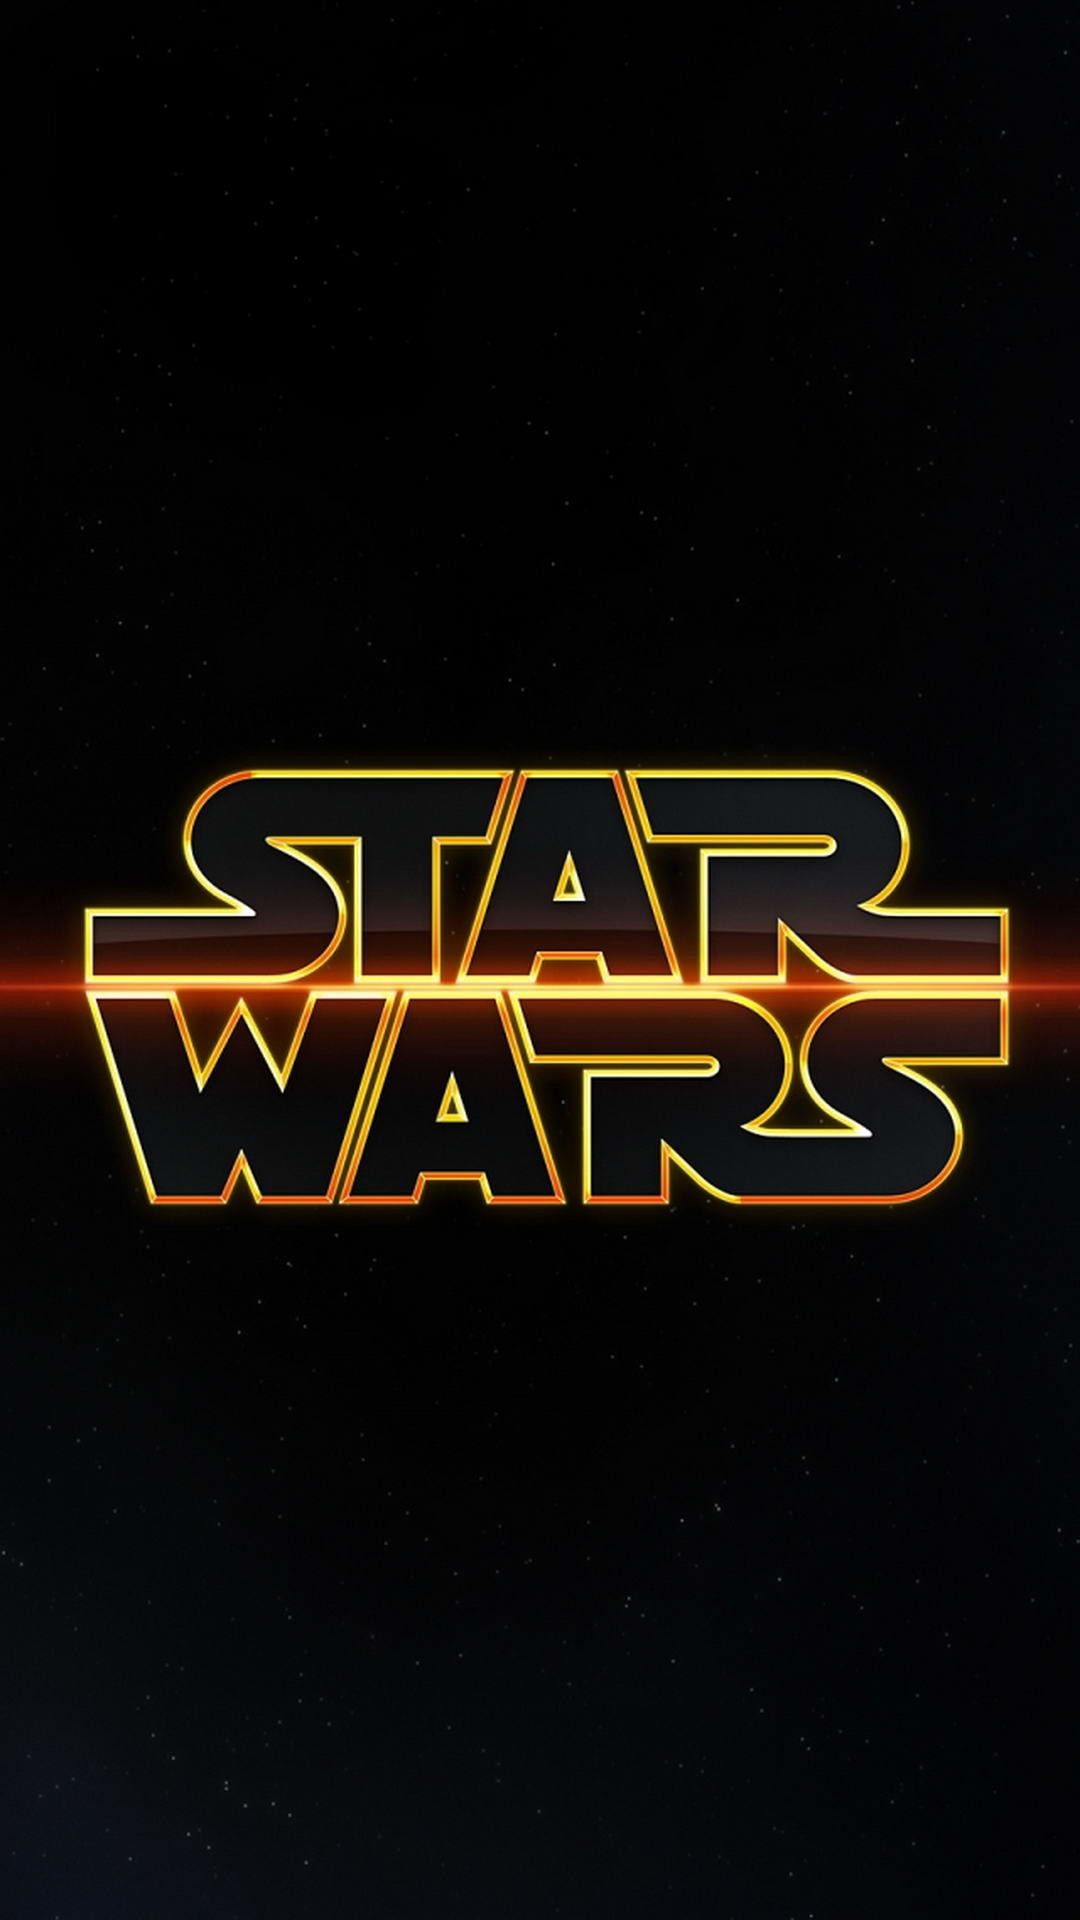 star wars wallpaper for android-Star Wars Logo